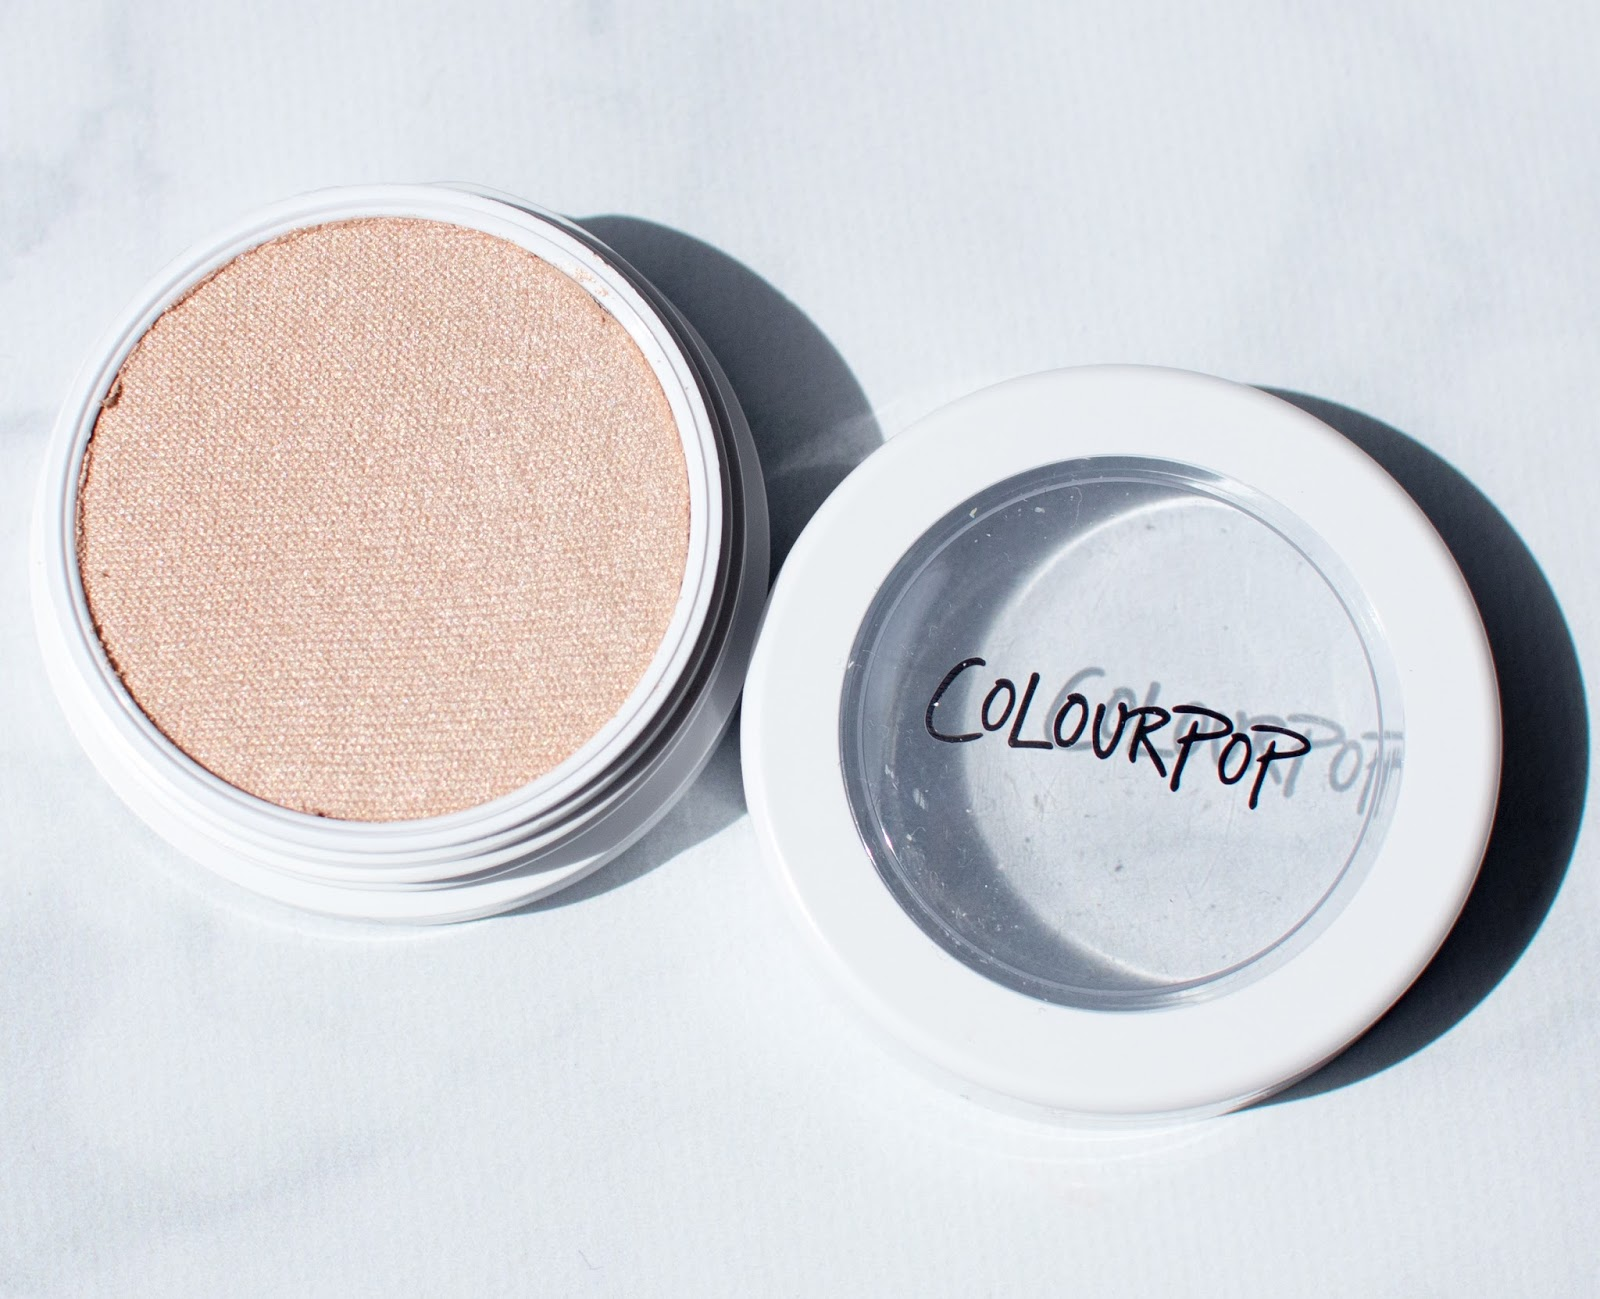 7c606735cc7 Colourpop Super Shock Highlighter in Lunch Money: Review and Swatches